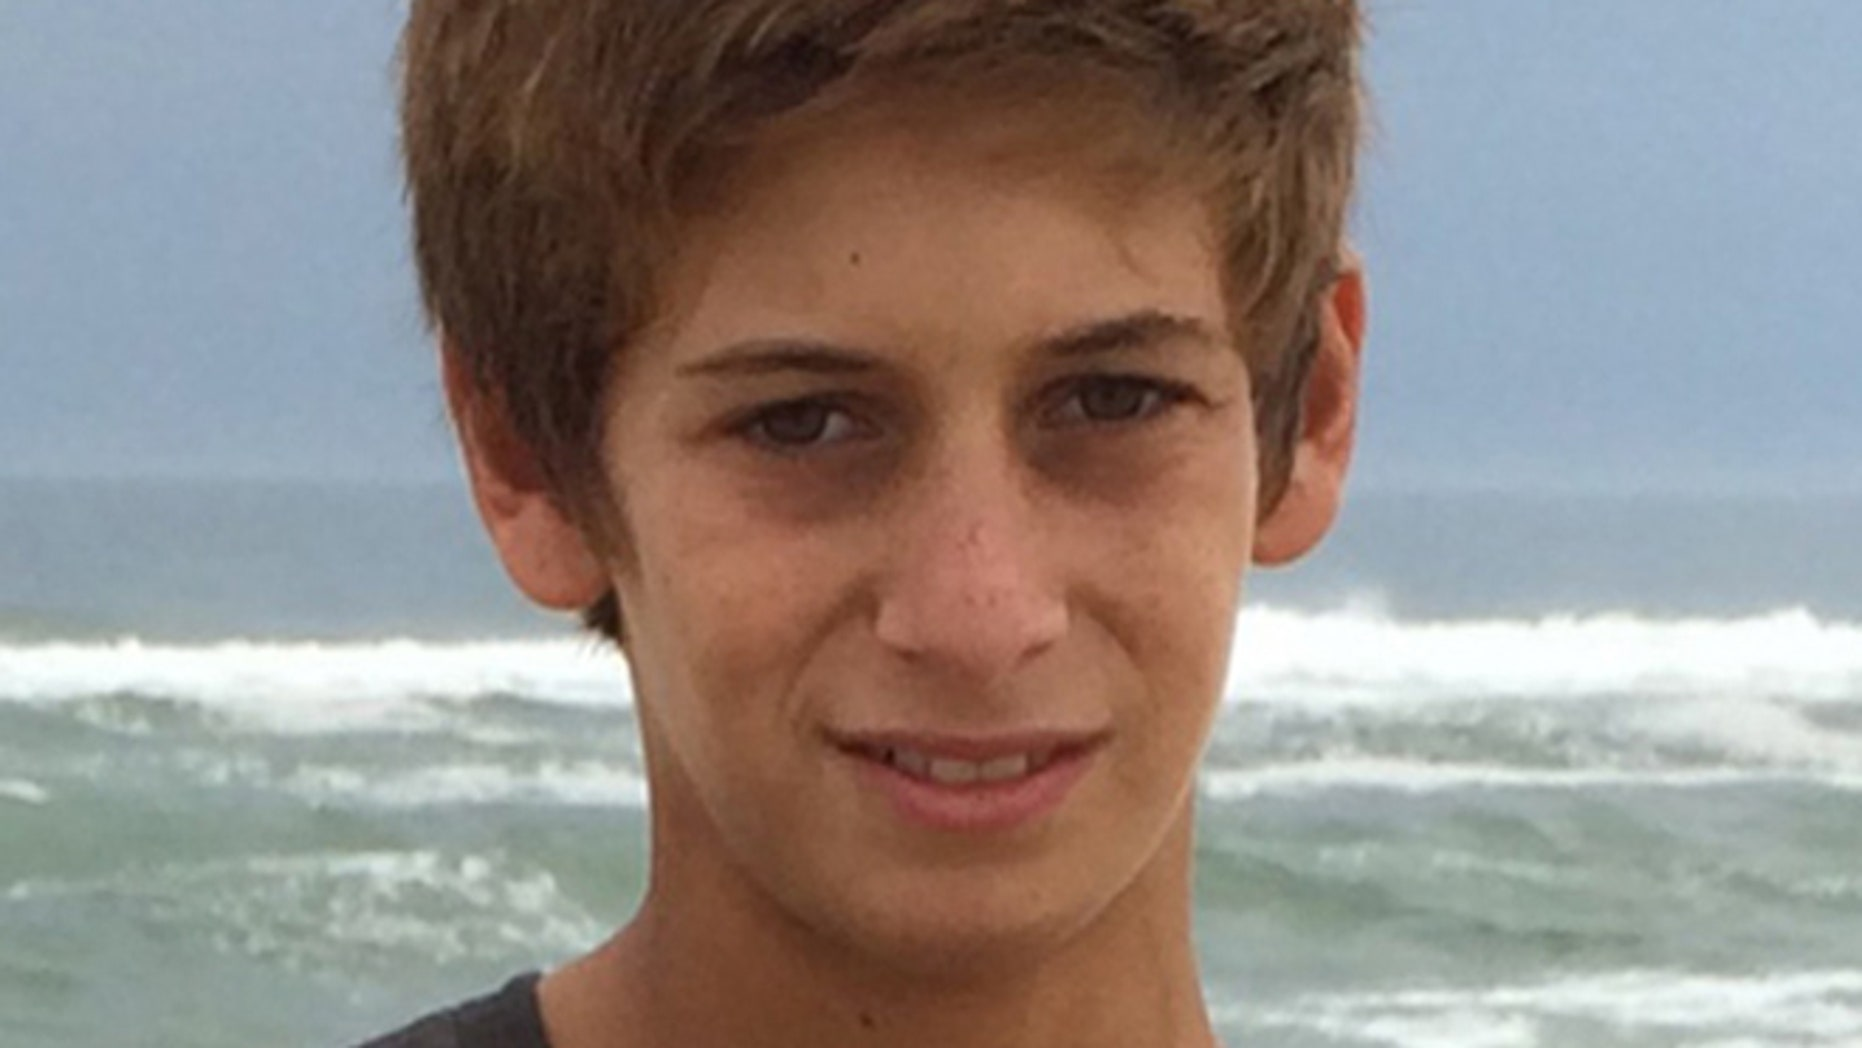 The family of Perry Cohen issued a statement Tuesday saying it is satisfied that the family of Austin Stephanos will share whatever information is found on the cellphone with them and law enforcement.